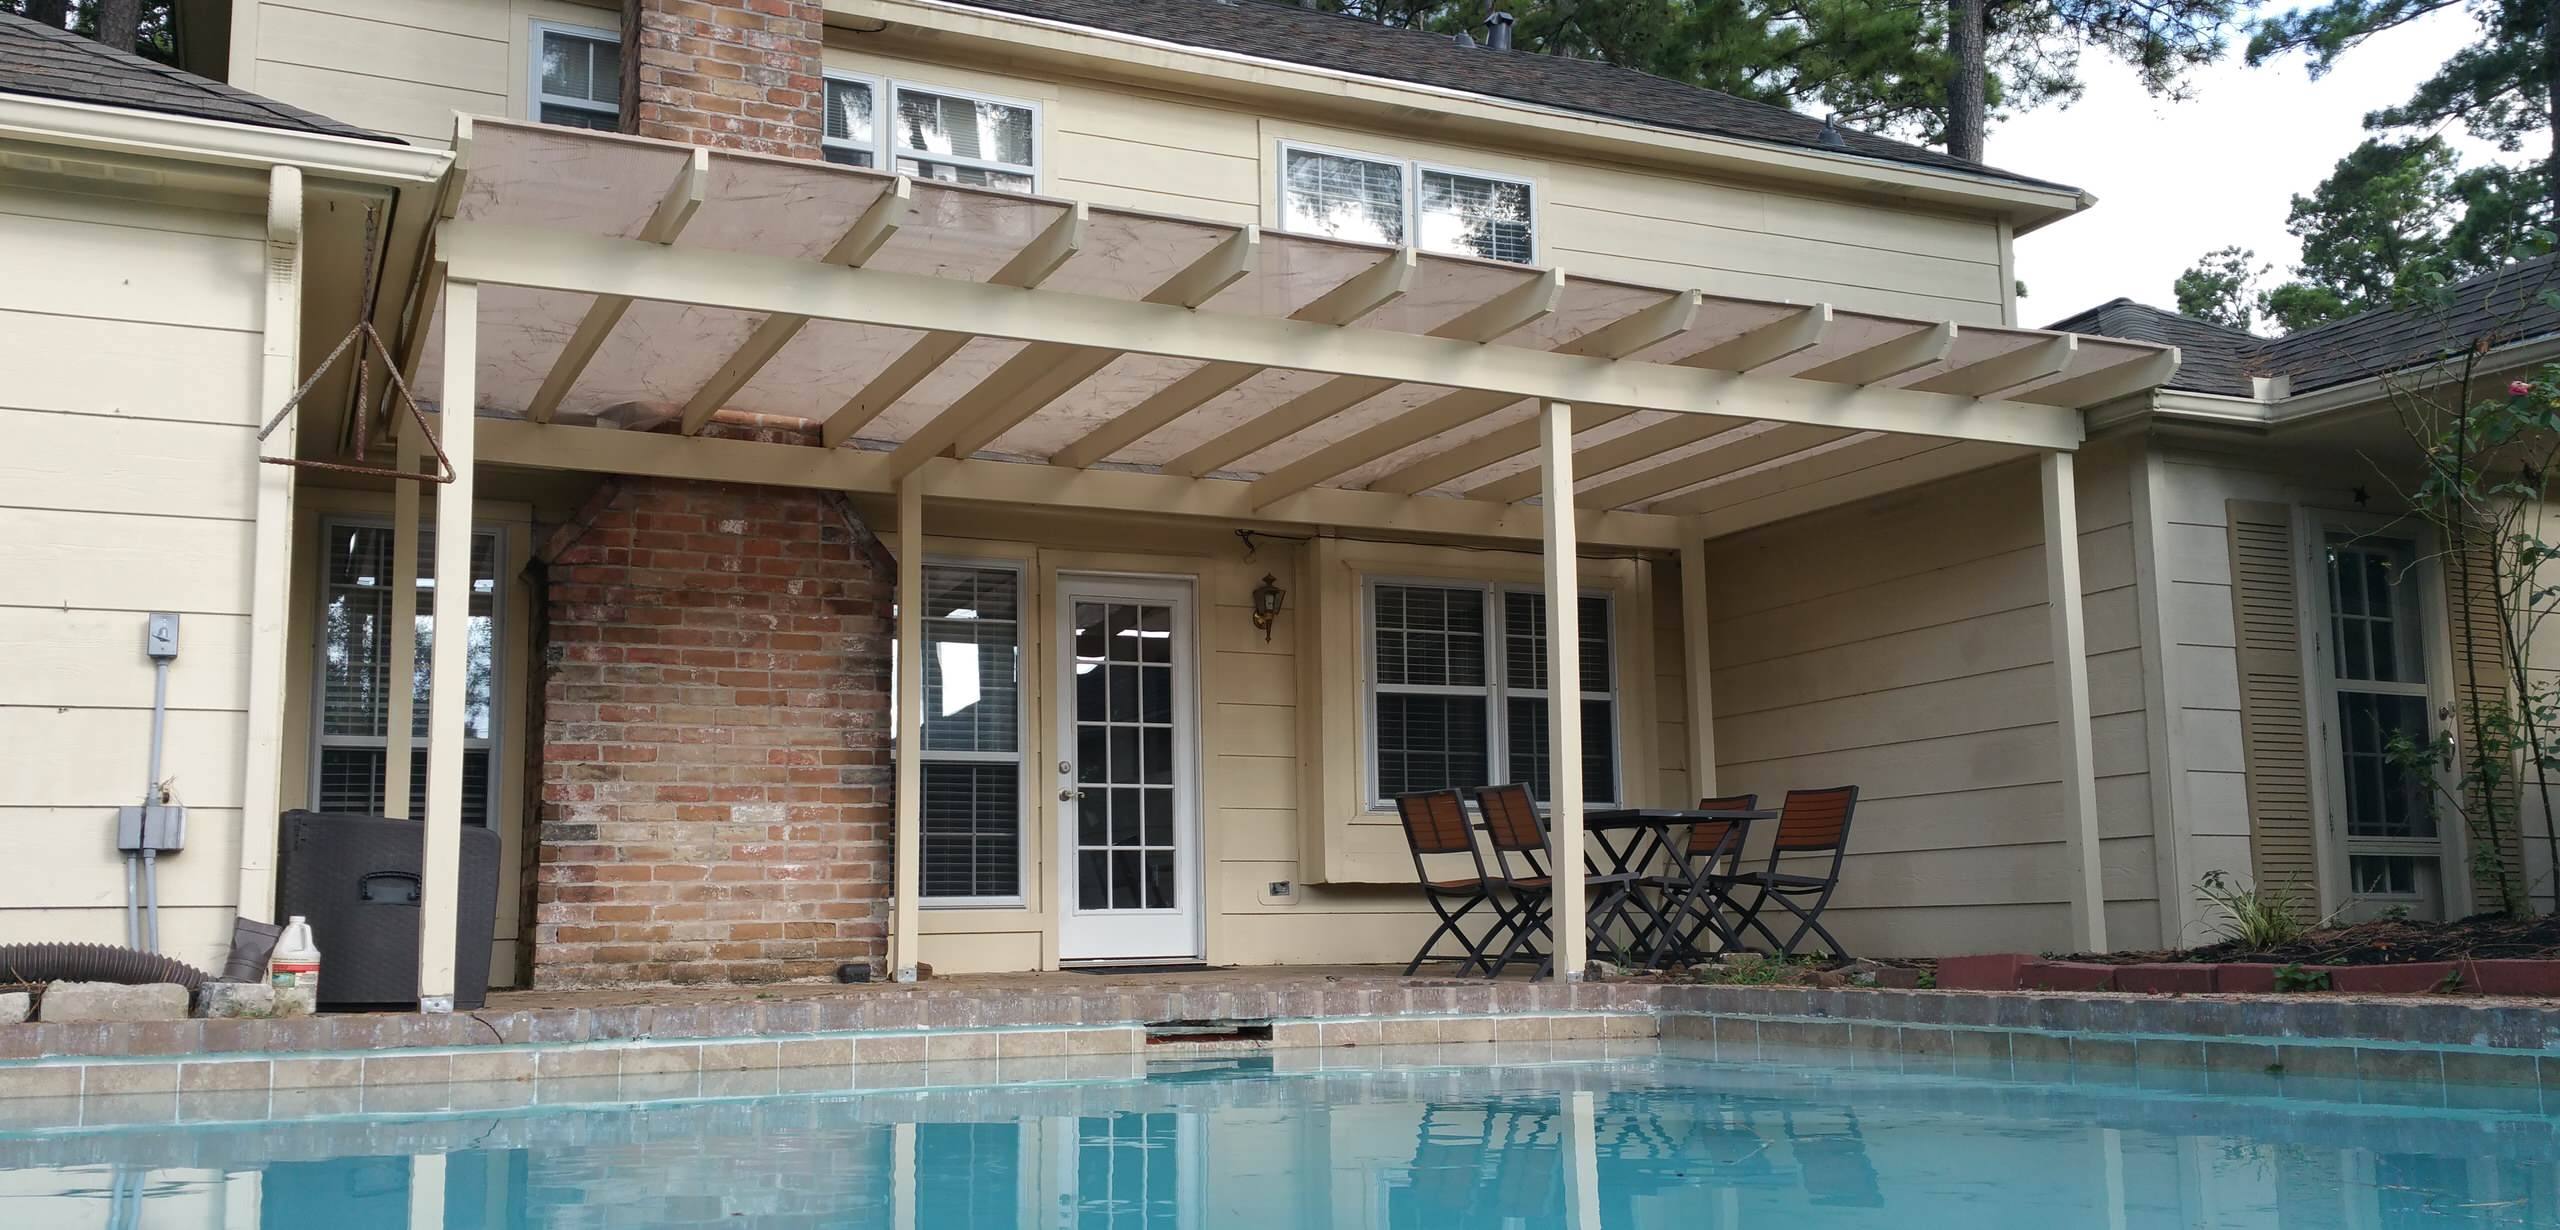 Rain Shadow Remodel and Re-roof